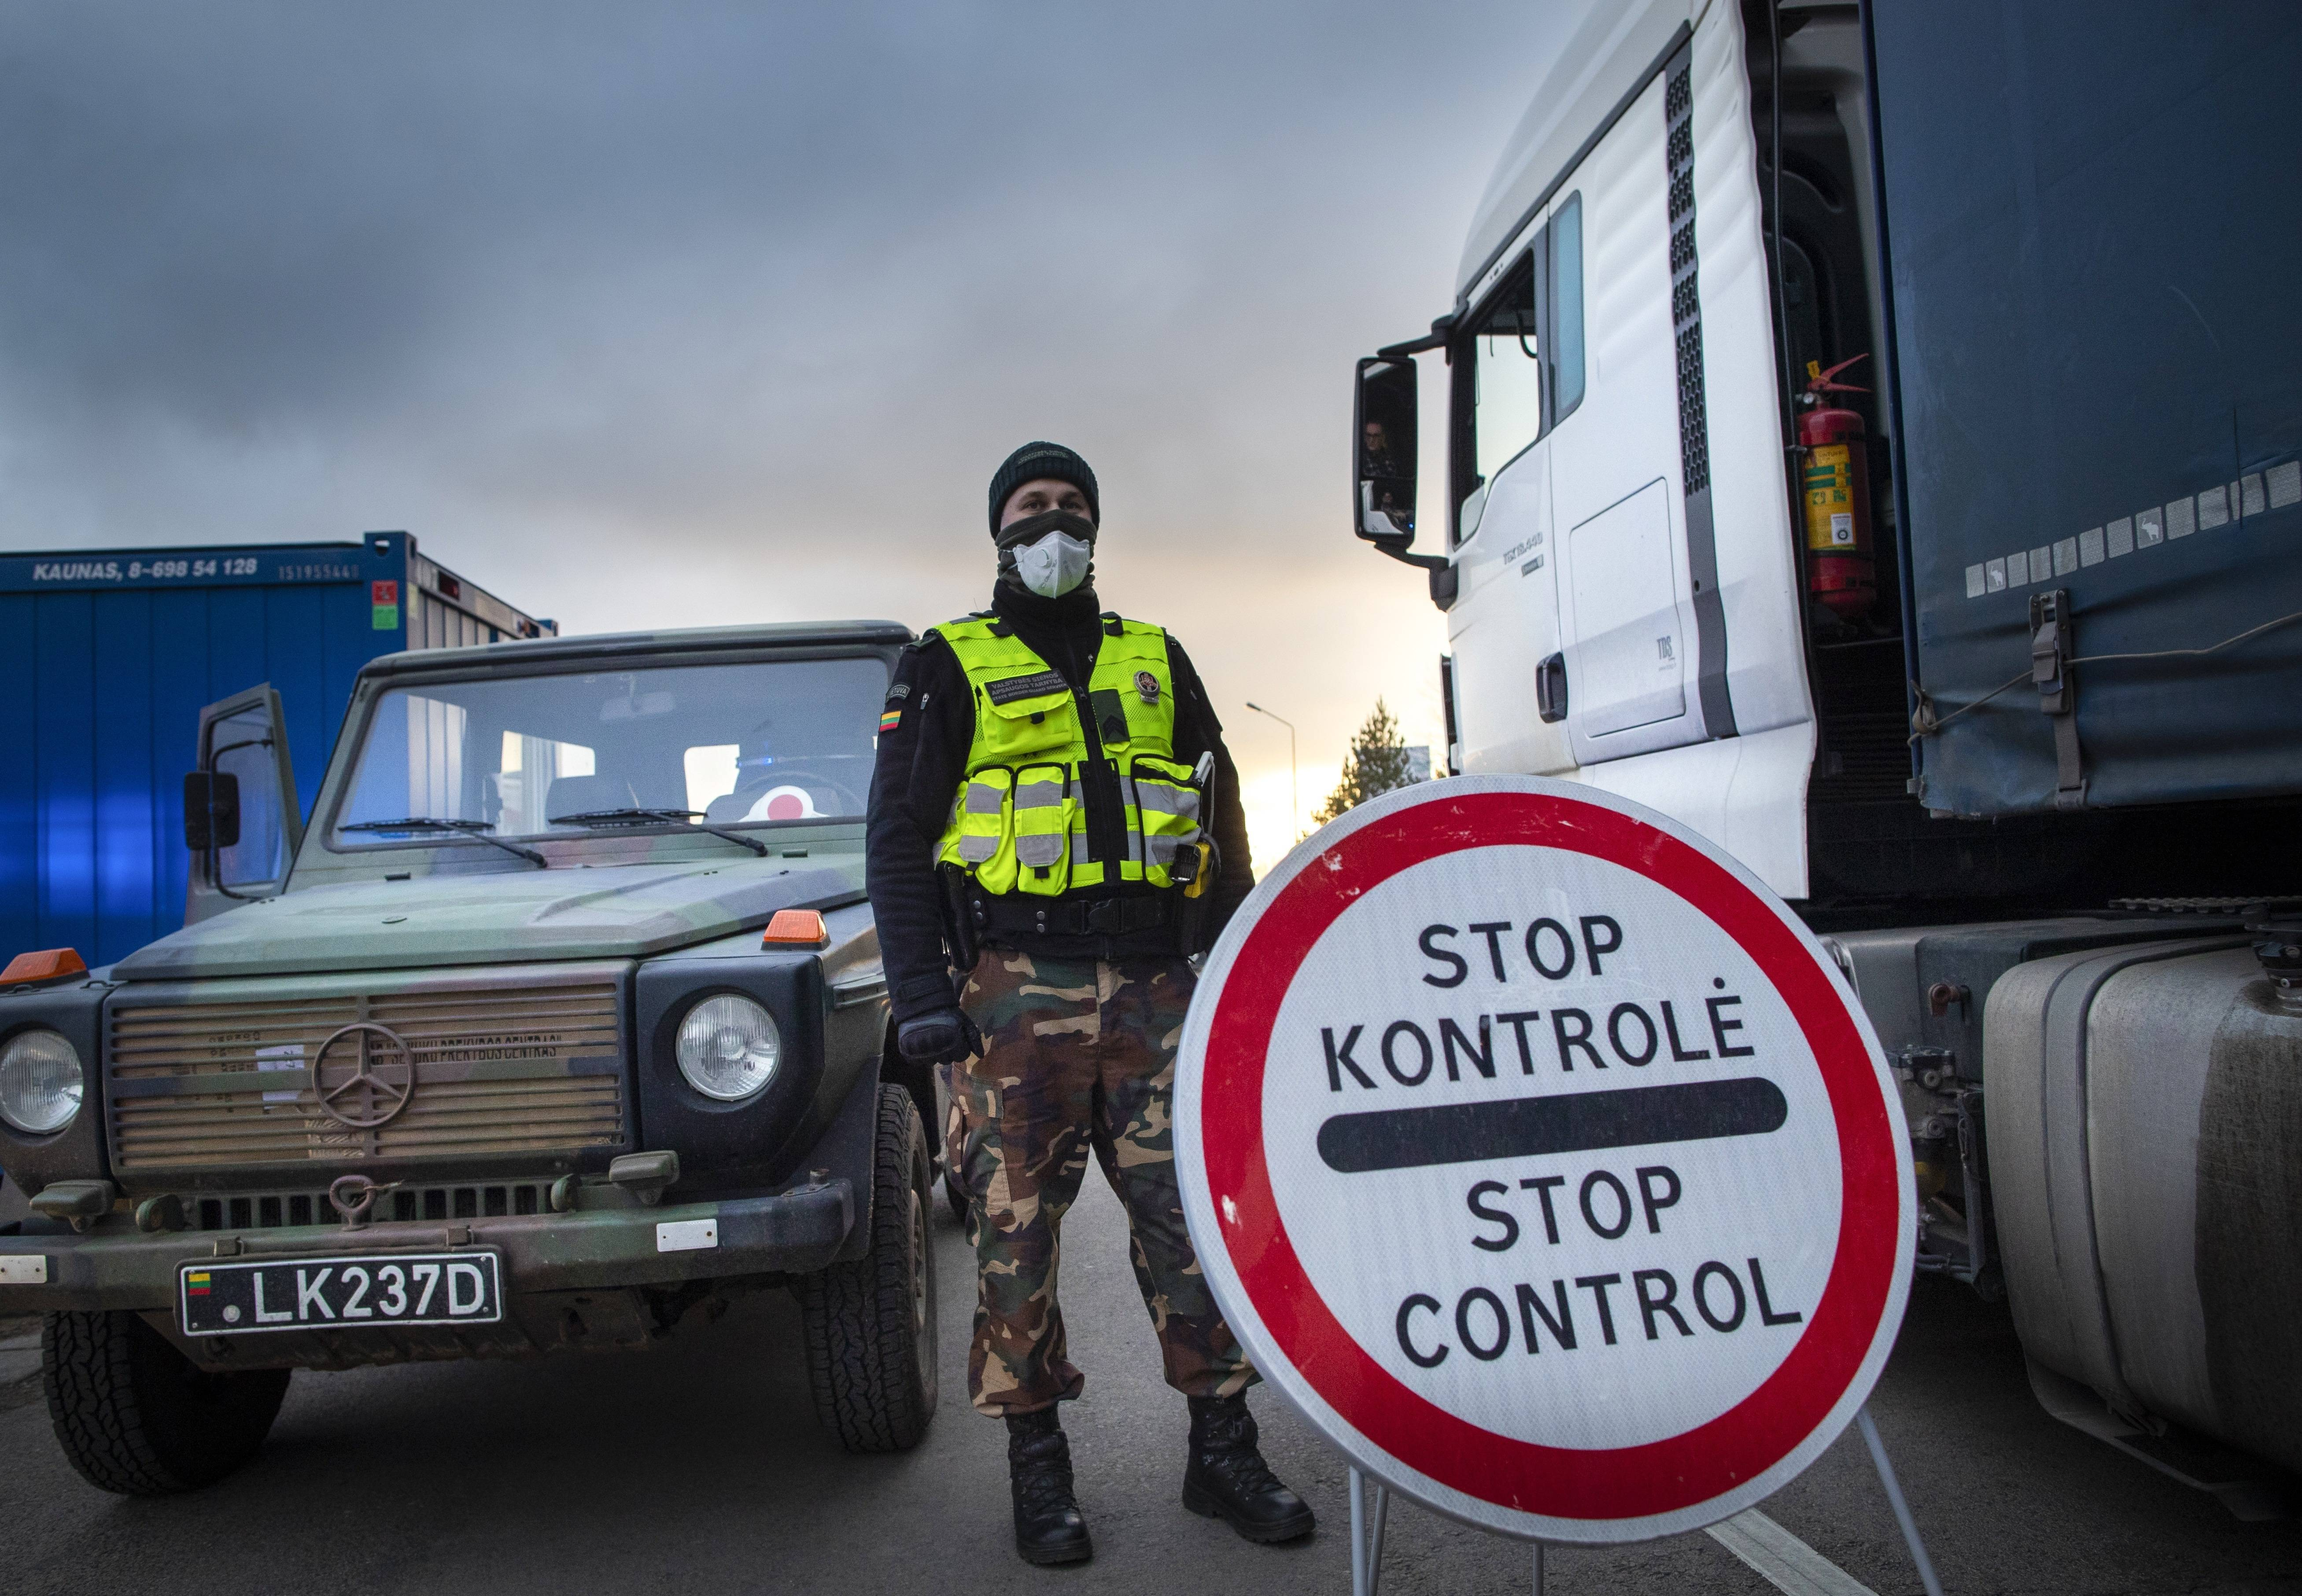 A Lithuanian border guard stands next to trucks stuck in traffic near the border with Poland. (Mindaugas Kulbis/AP)